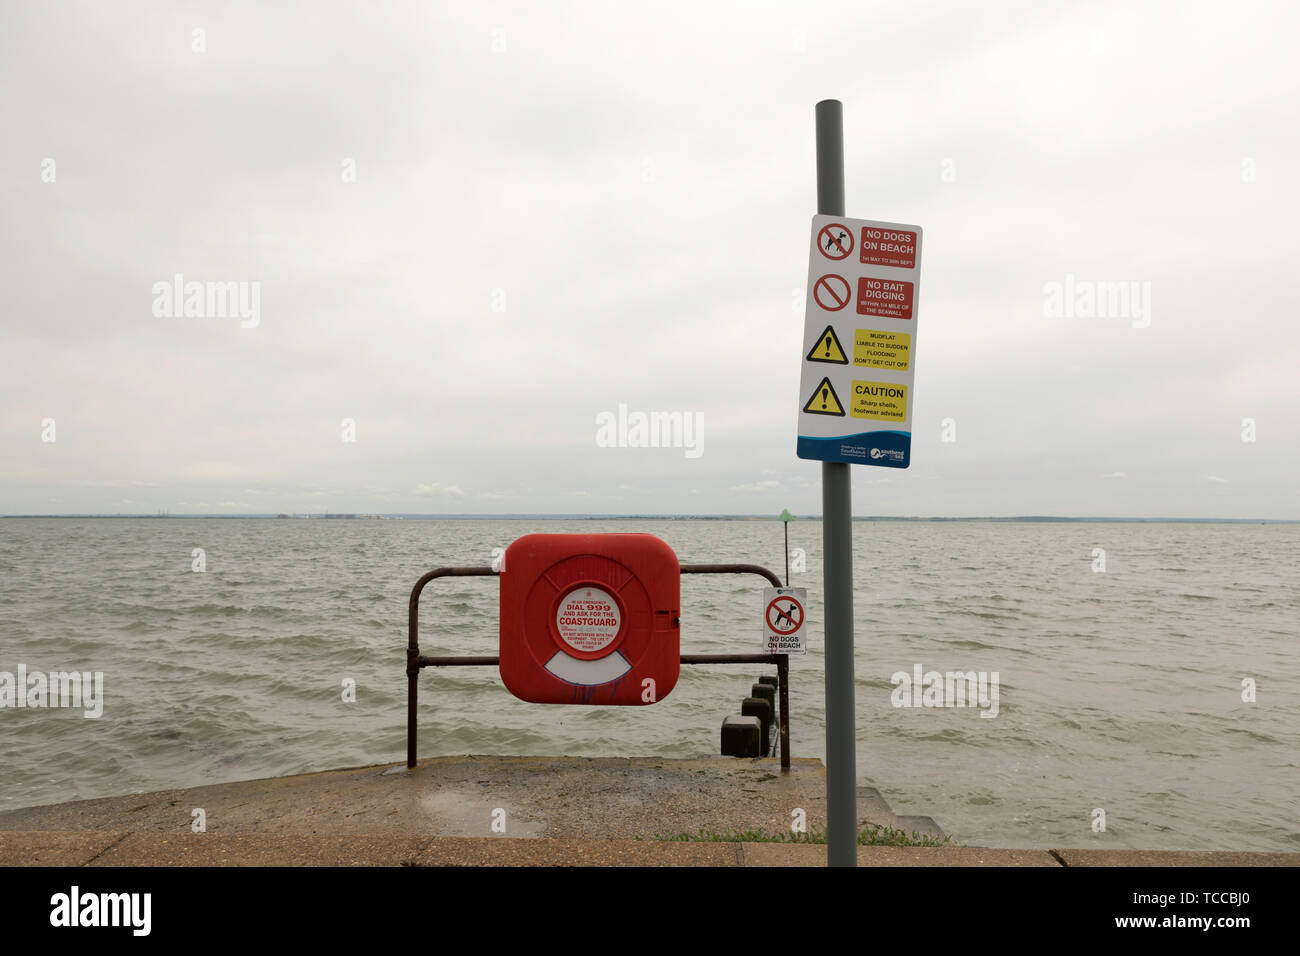 Southend on Sea, UK. 5th June, 2019. Lifebuoy ring and warnings sign post. - Stock Image